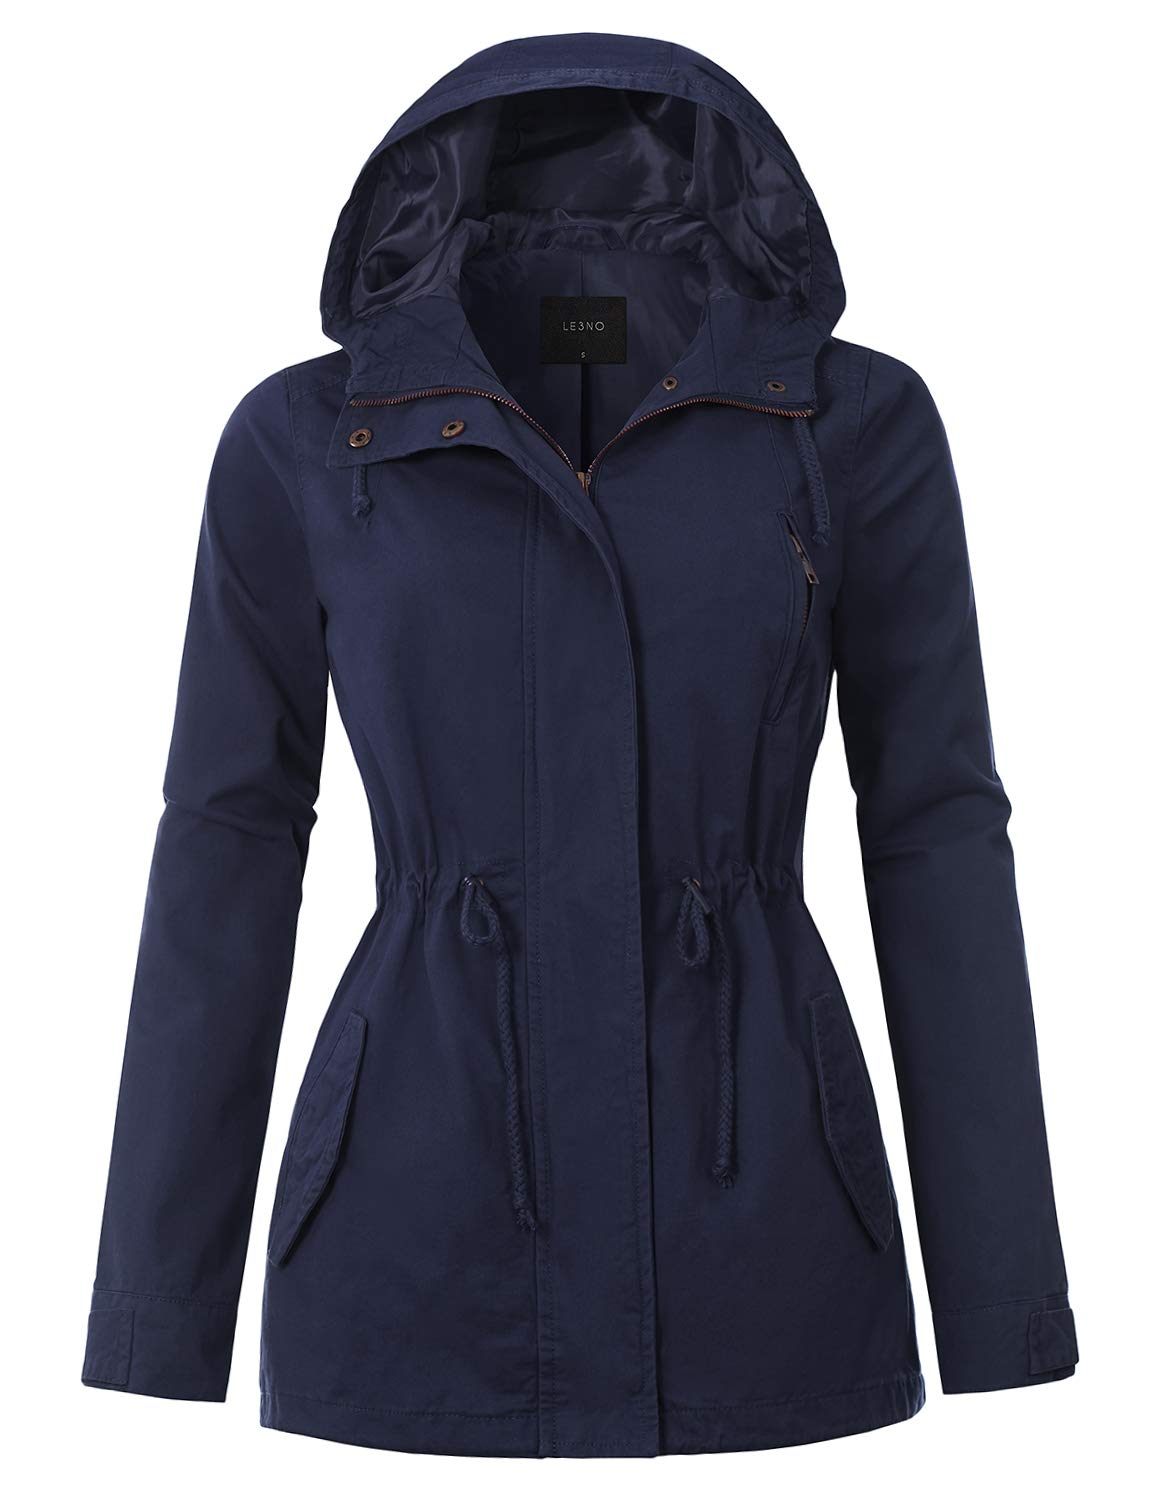 LE3NO Womens Military Anorak Safari Jacket with Pockets, Navy, XX-Large by LE3NO